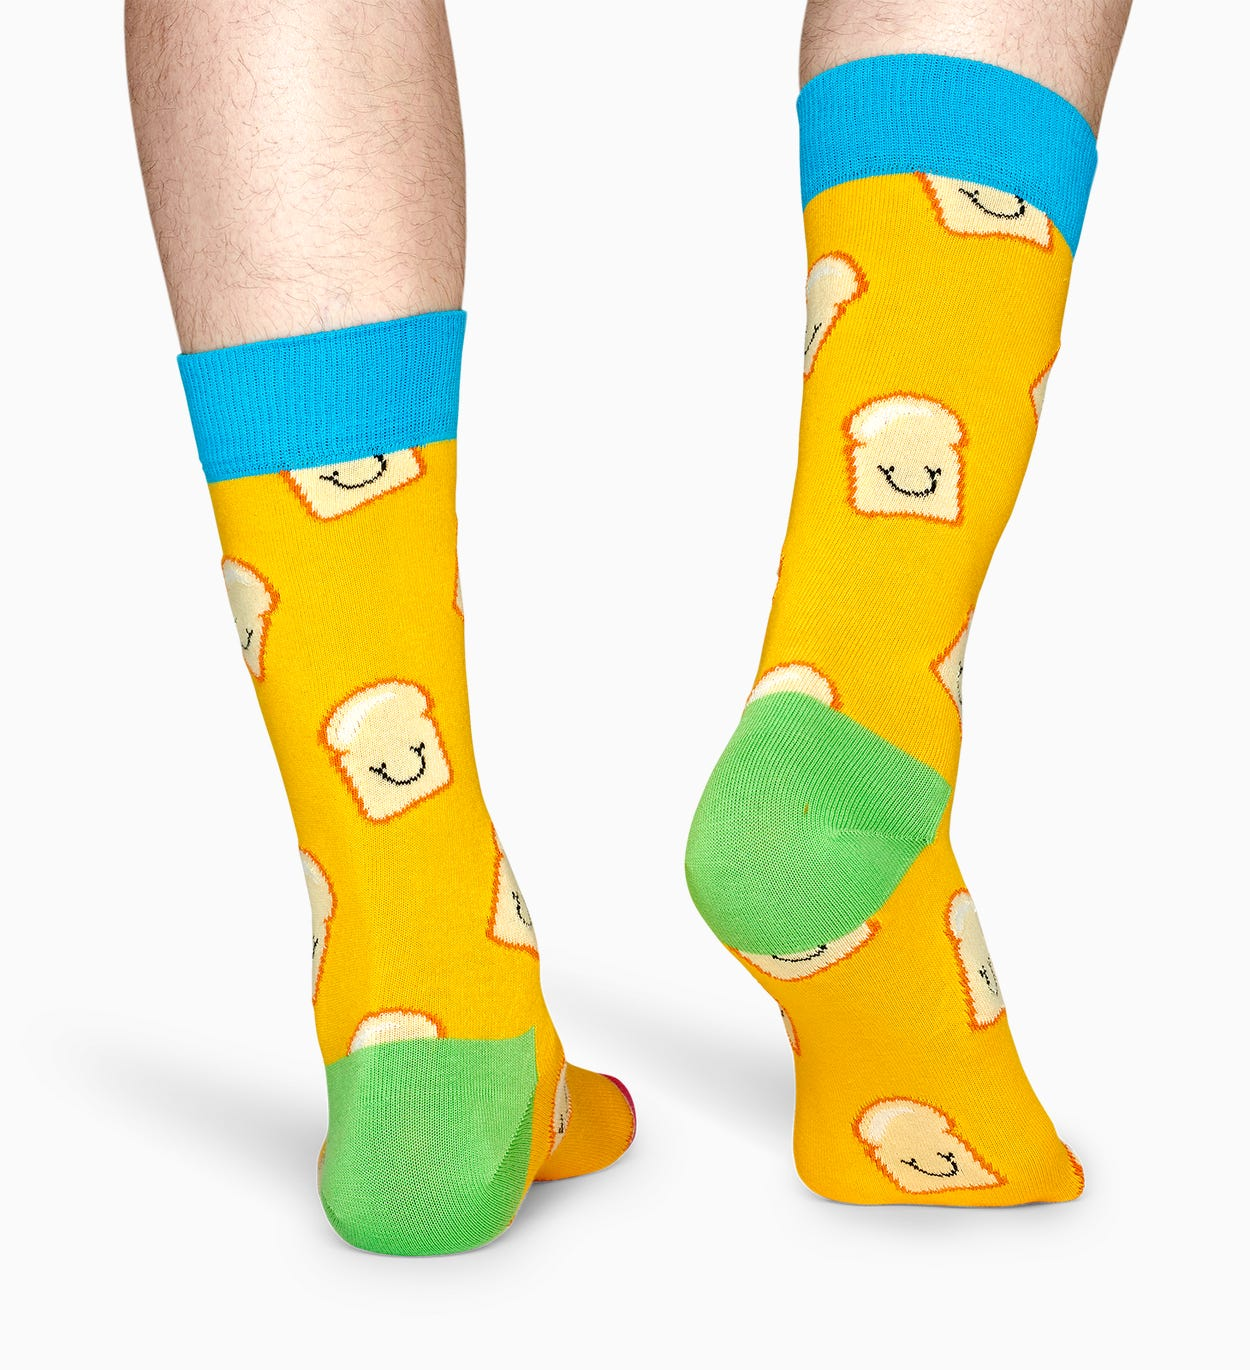 Treat your feet to a tasty slice of Toast socks! These smiley slices come in delicious buttery yellow for a mellow style that's sure to get a few laughs…